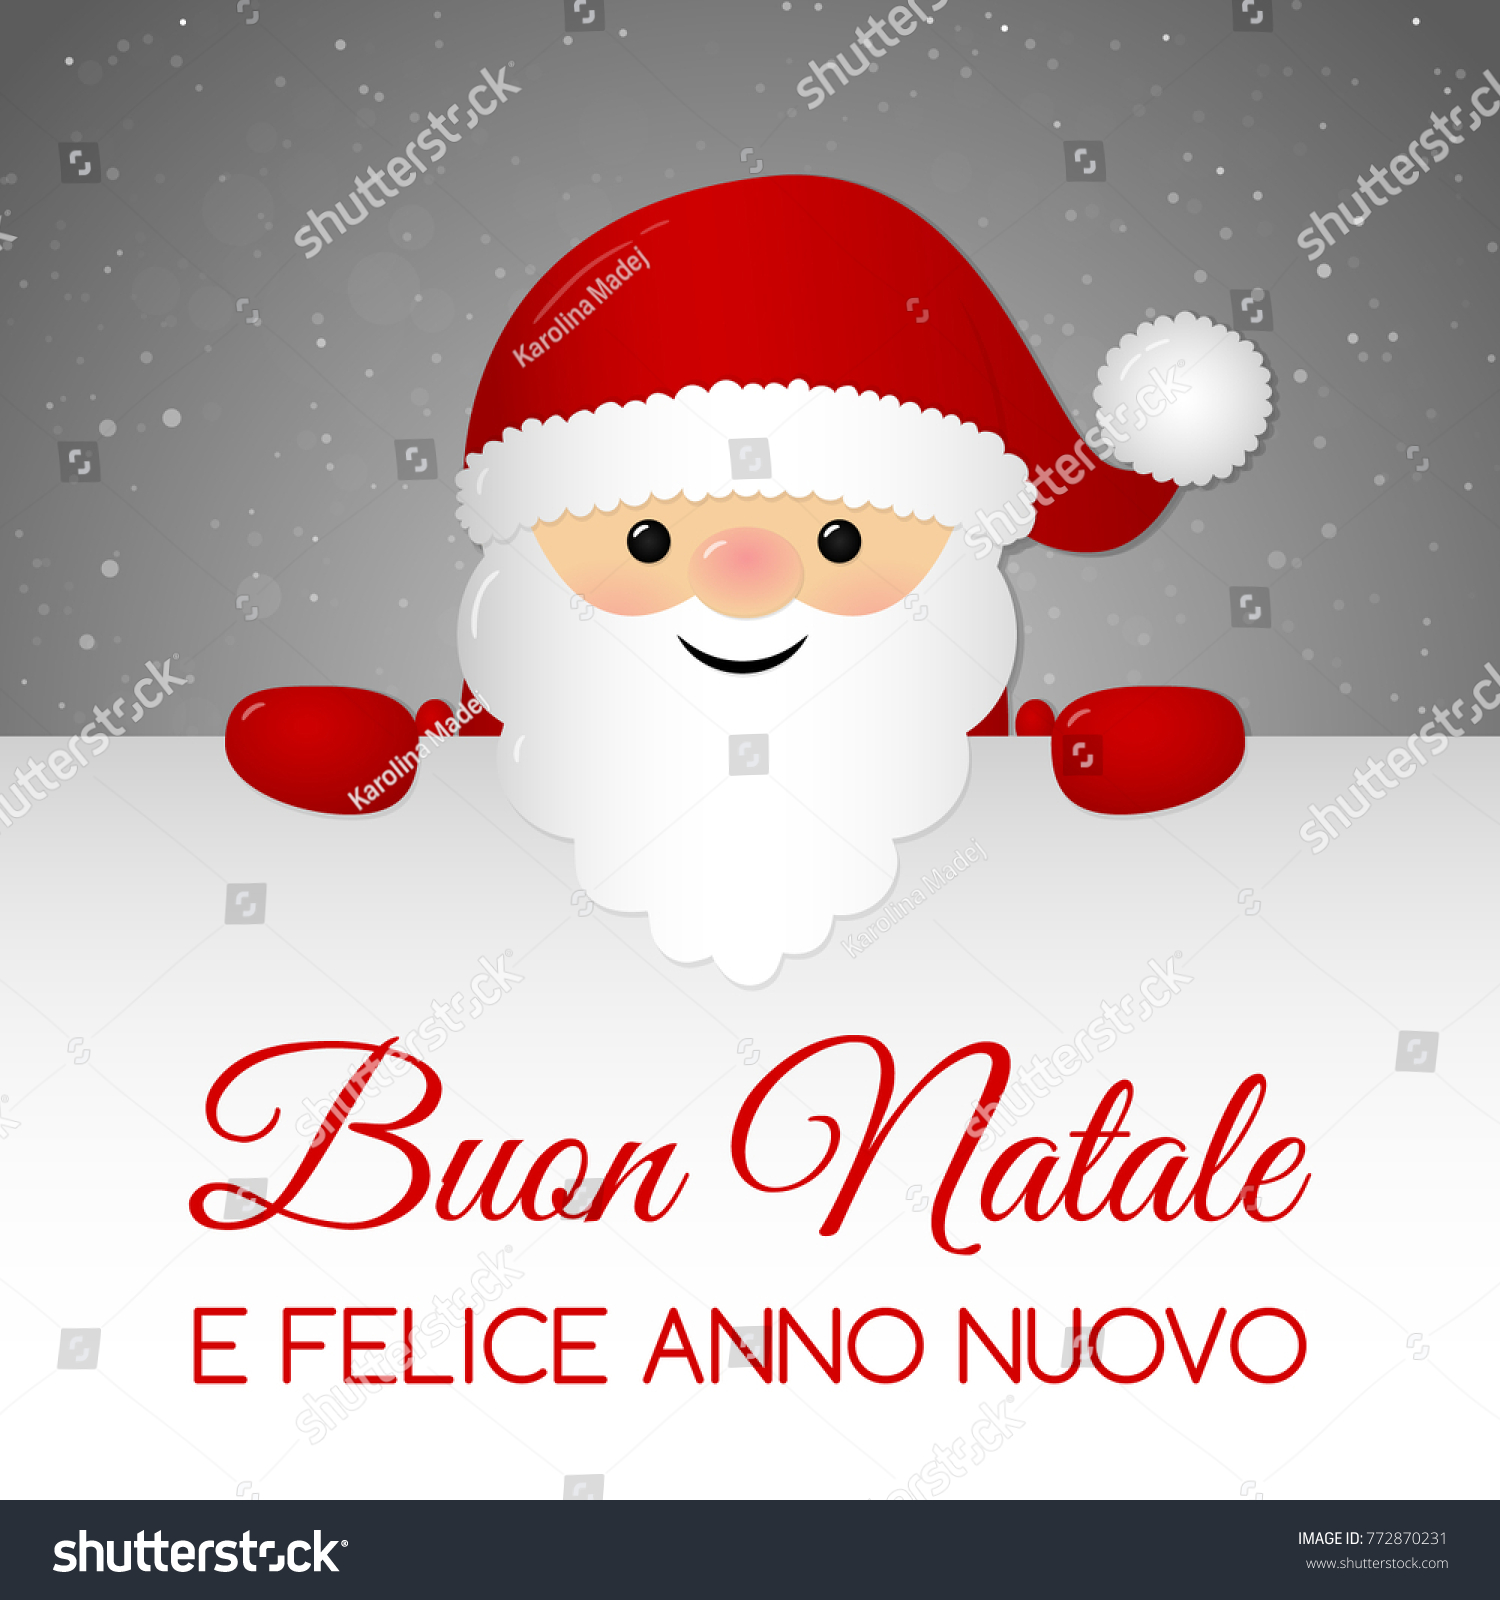 Buon Natale Merry Christmas Italian Christmas Stock Vector (Royalty ...